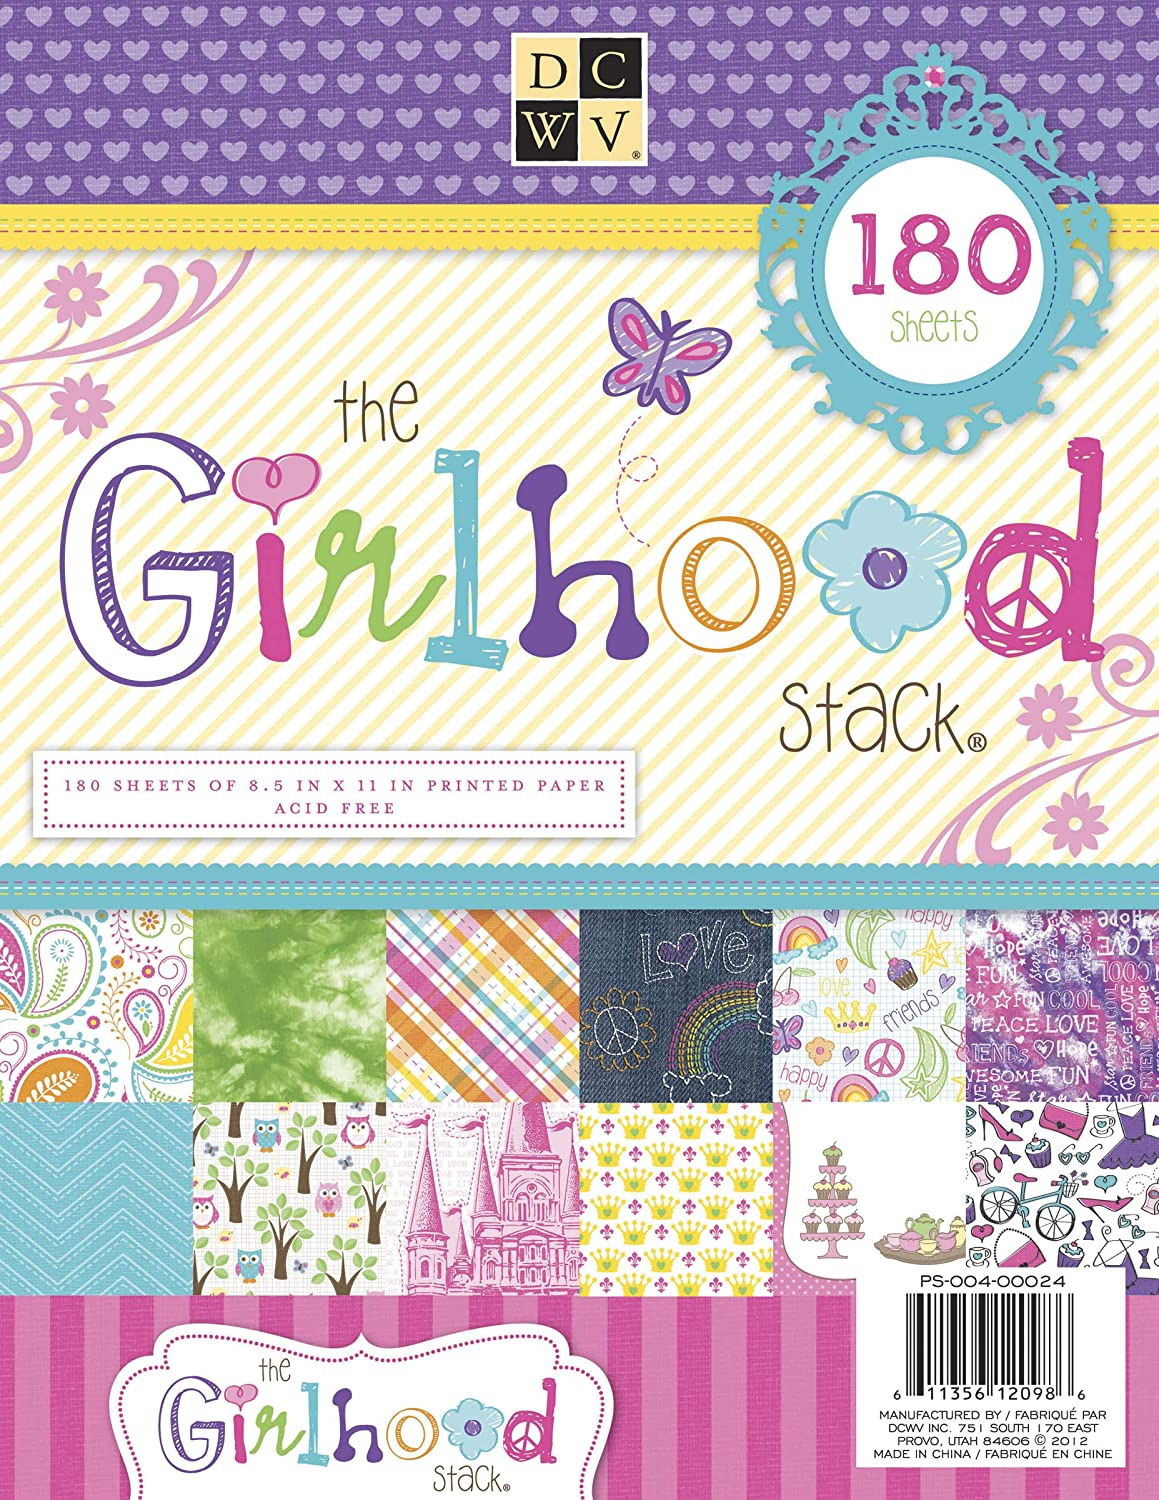 Multicolor DCWV PS-004-00024 Cardstock Paper Girlhood Stack 8.5X11 180 Sheets Acid Free